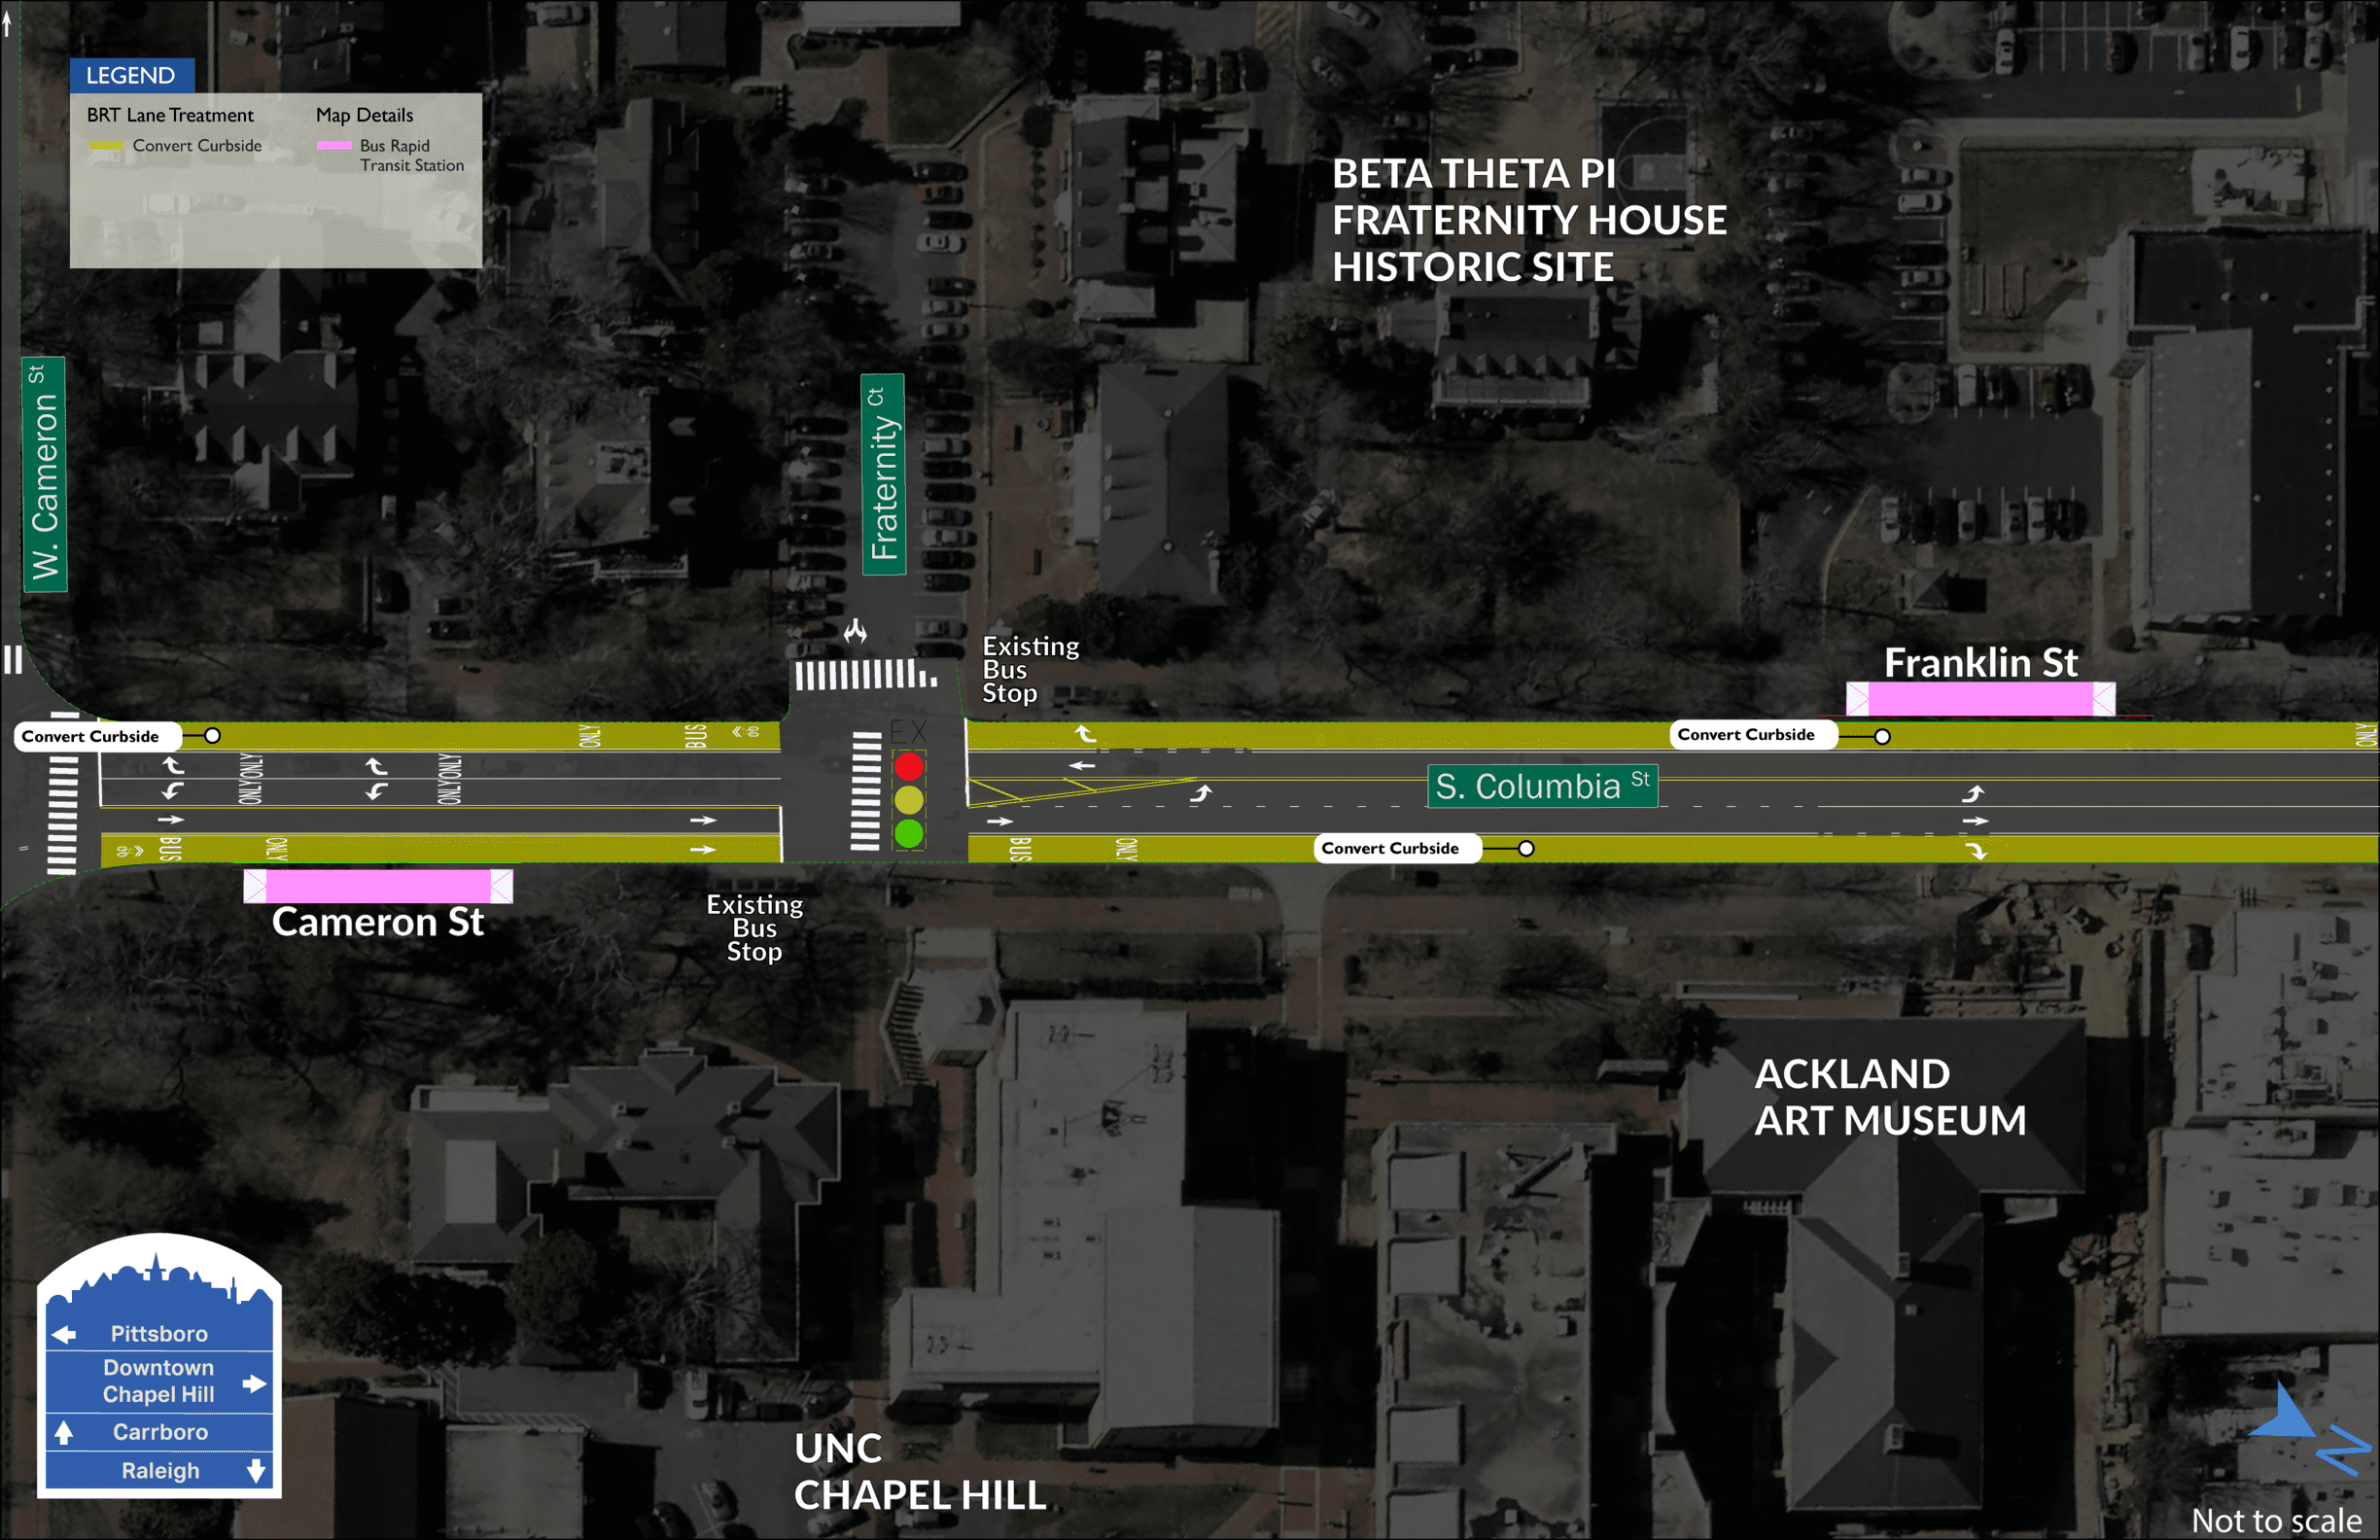 Cameron and Franklin BRT map showing two stations on both sides of S. Columbia Street with Fraternity Court in dividing them